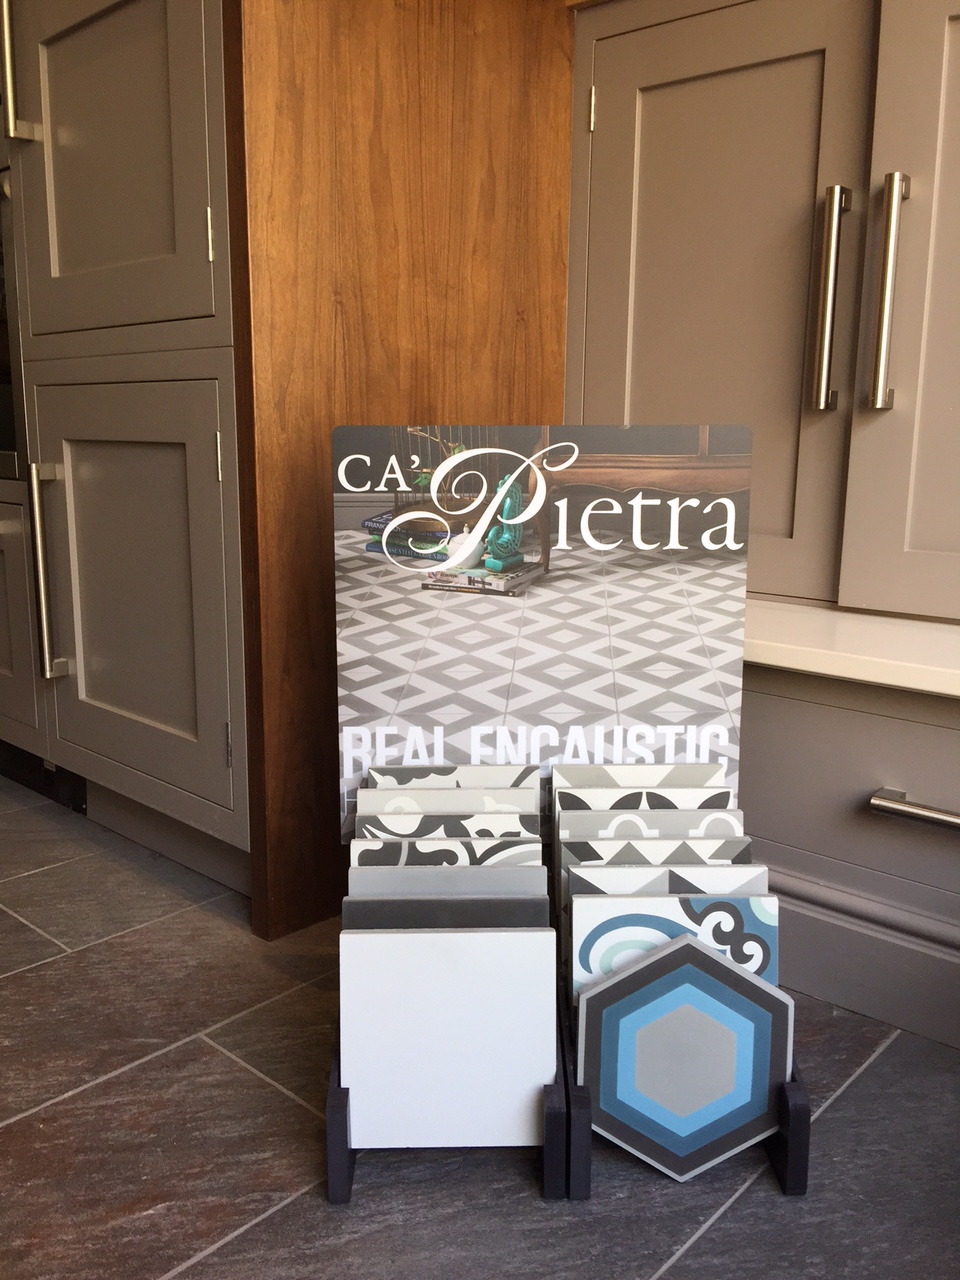 Full set of CaPietra Real Encaustic floor tiles now in our showroom